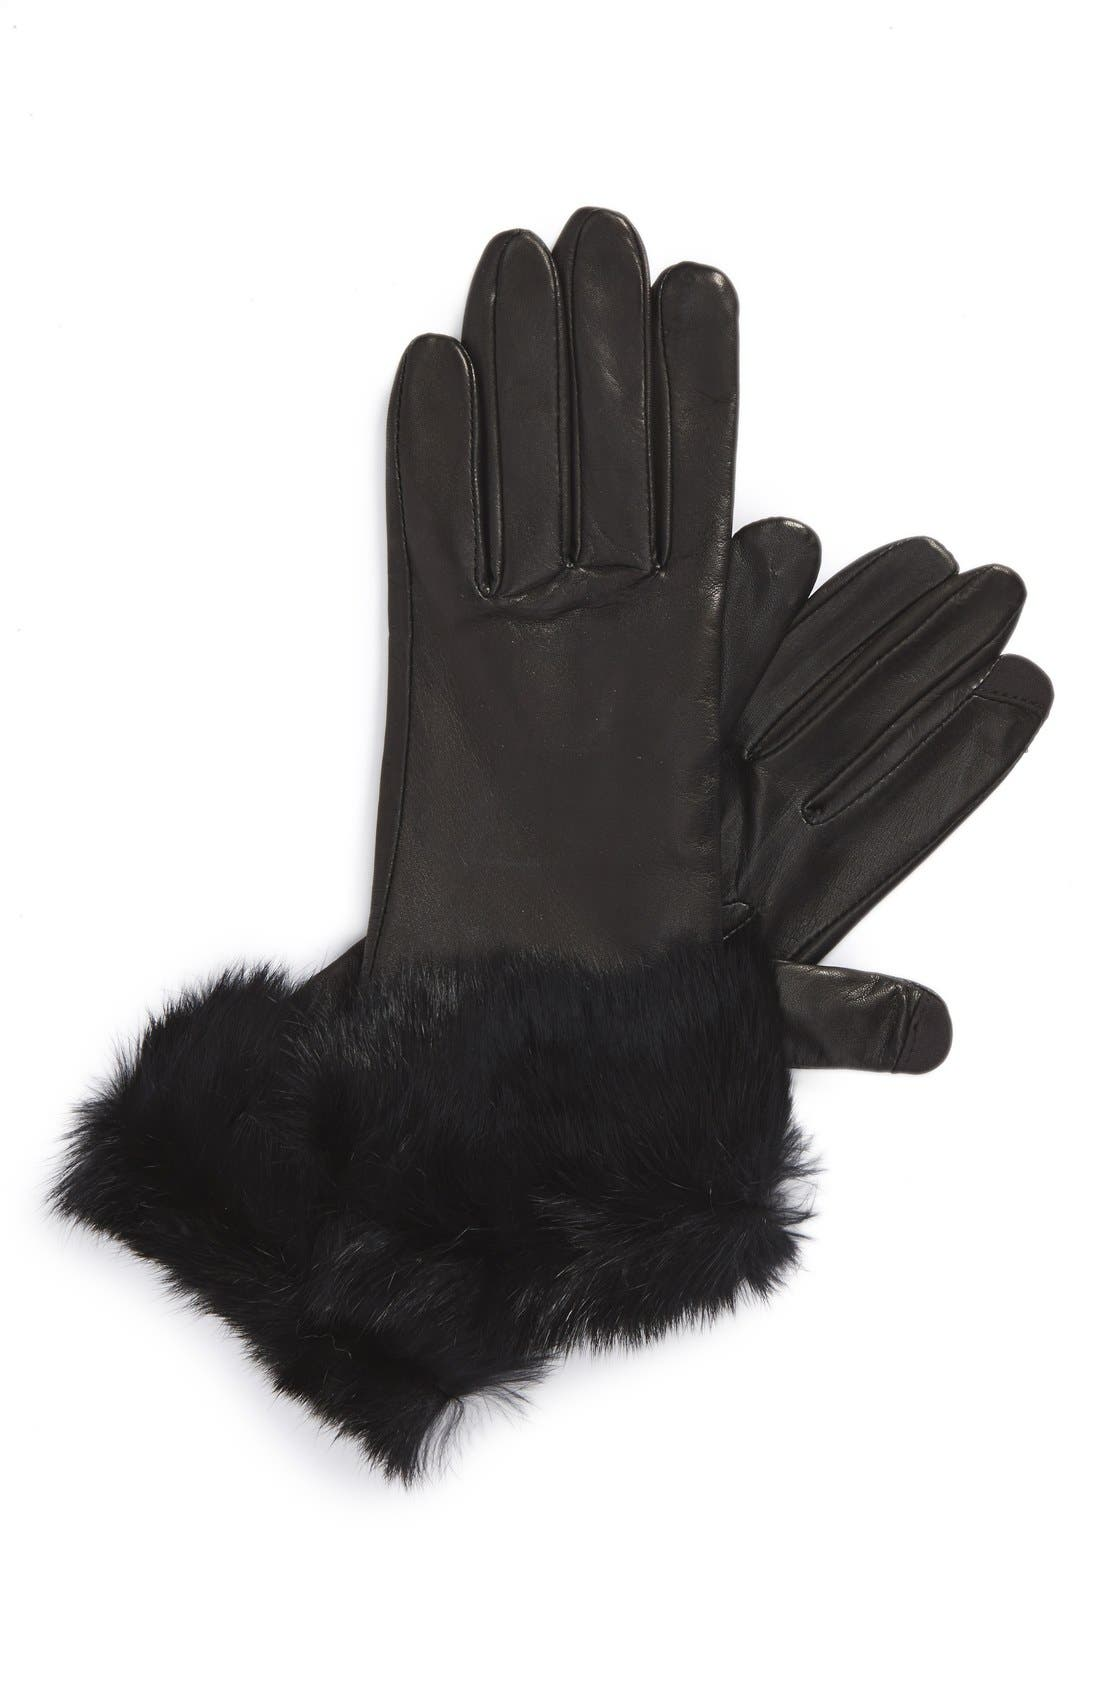 Alternate Image 1 Selected - Fownes Brothers Leather & Genuine Rabbit Hair Tech Gloves